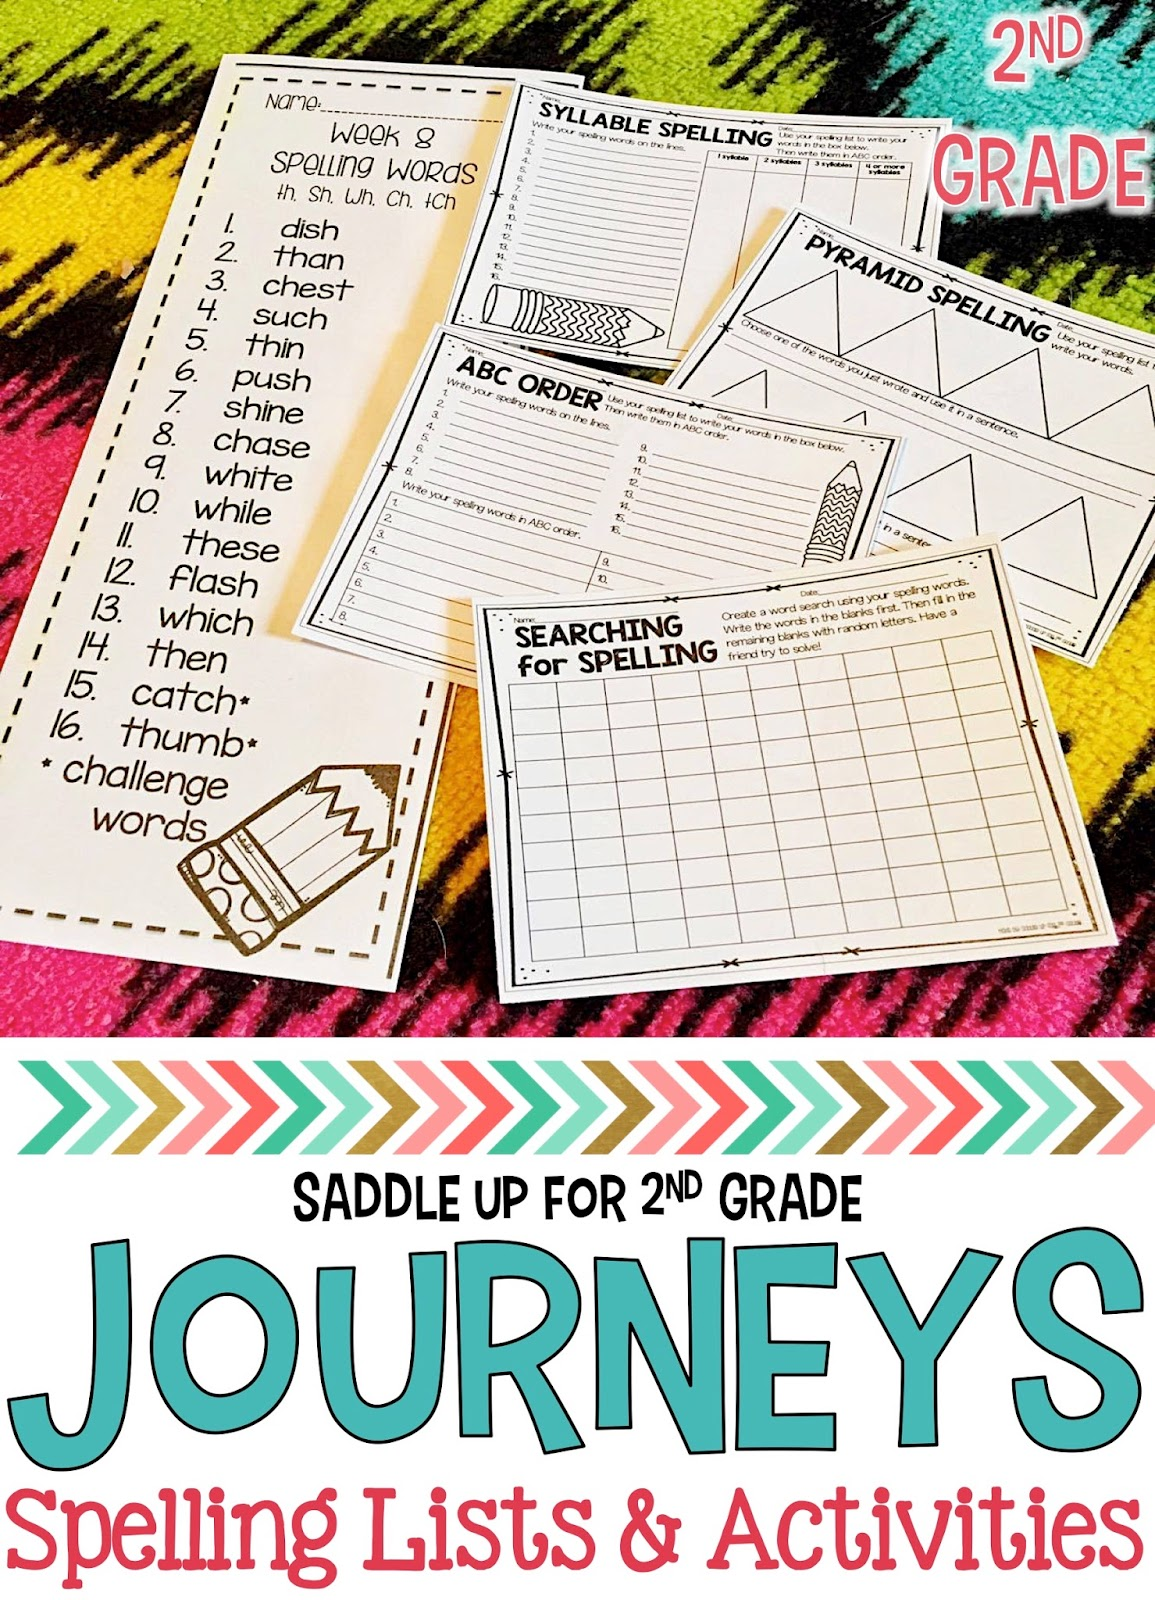 Journeys 2nd Grade Spelling Lists and Activities - Saddle up for ...